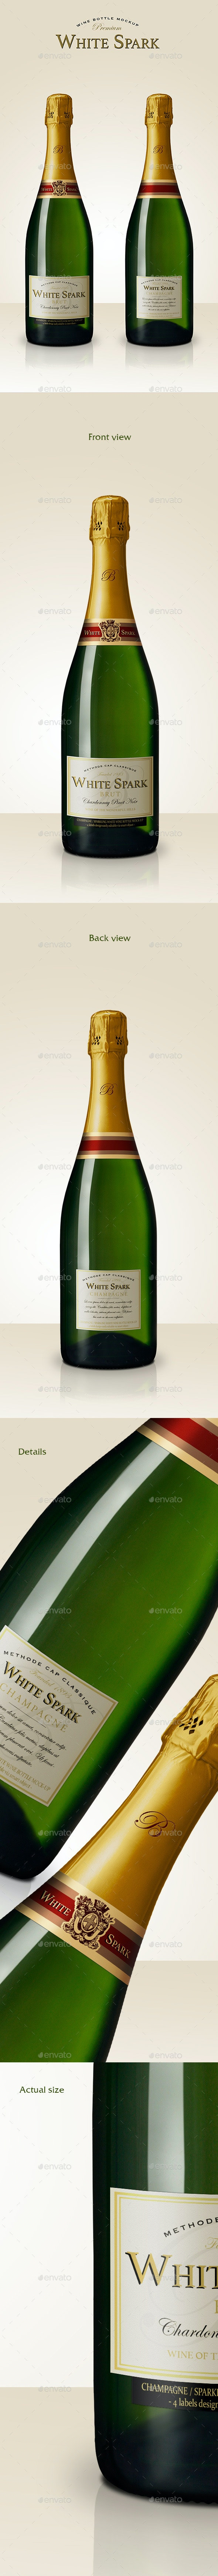 Premium Champagne Bottle Mockup - Food and Drink Packaging